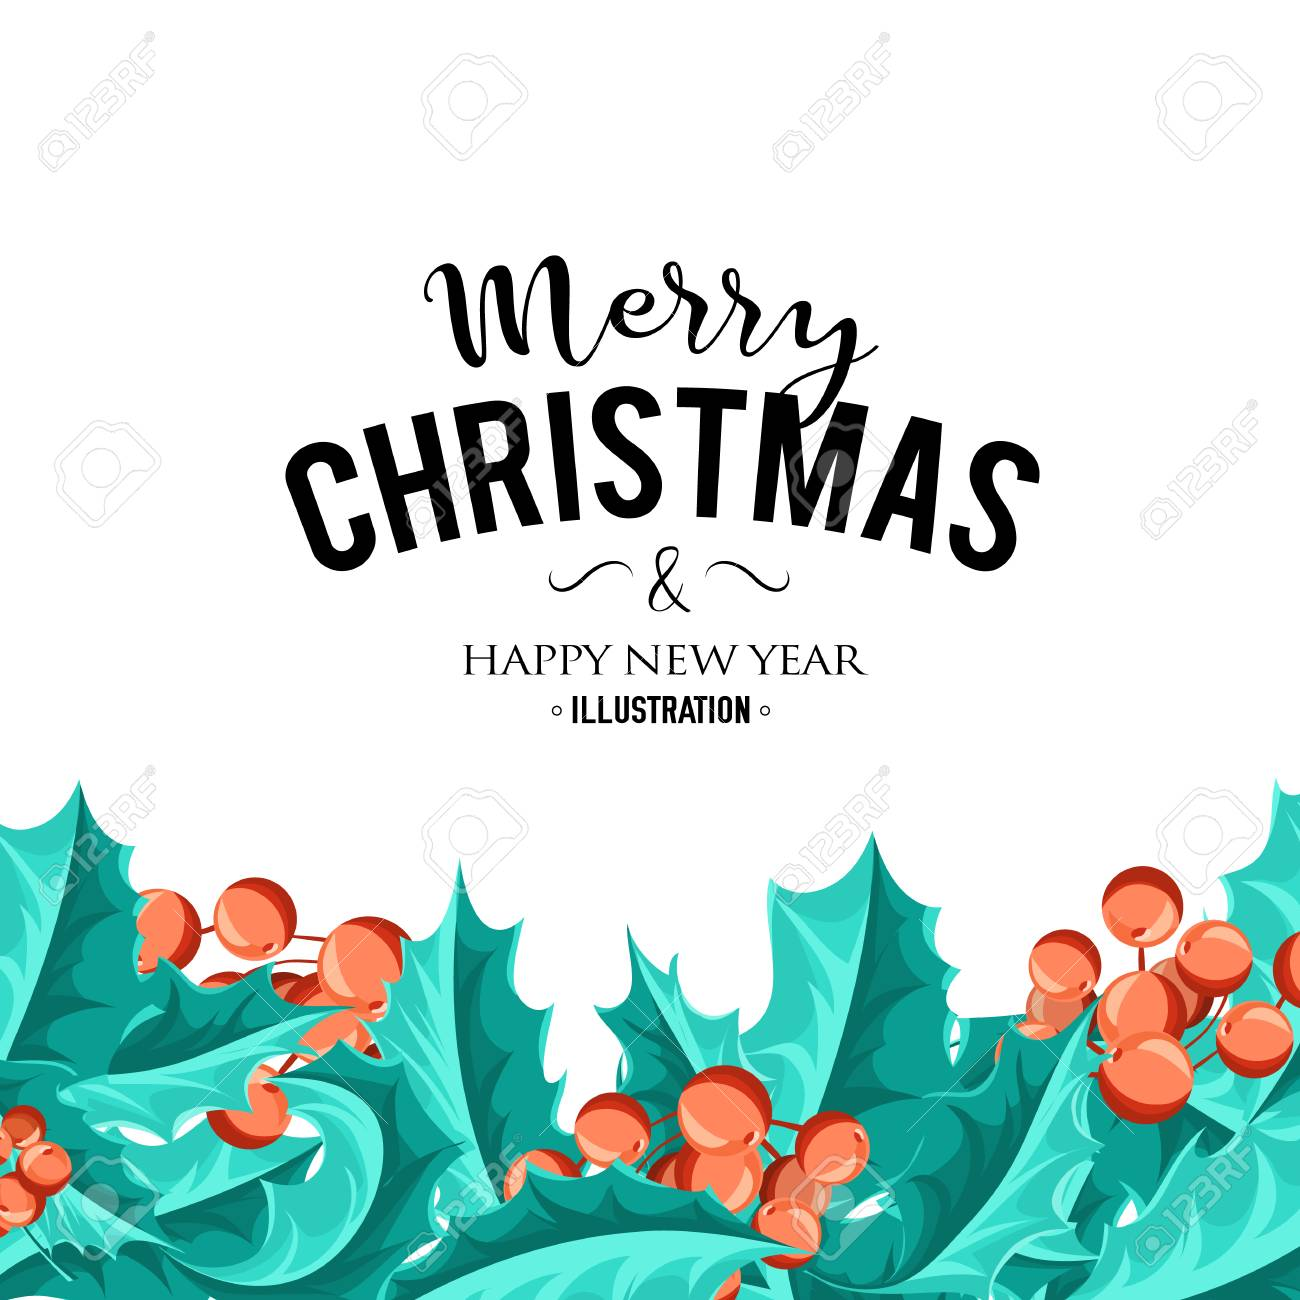 Merry Christmas background. Vector art. Perfect decoration element for cards, invitations and other types of holiday design. - 66786866